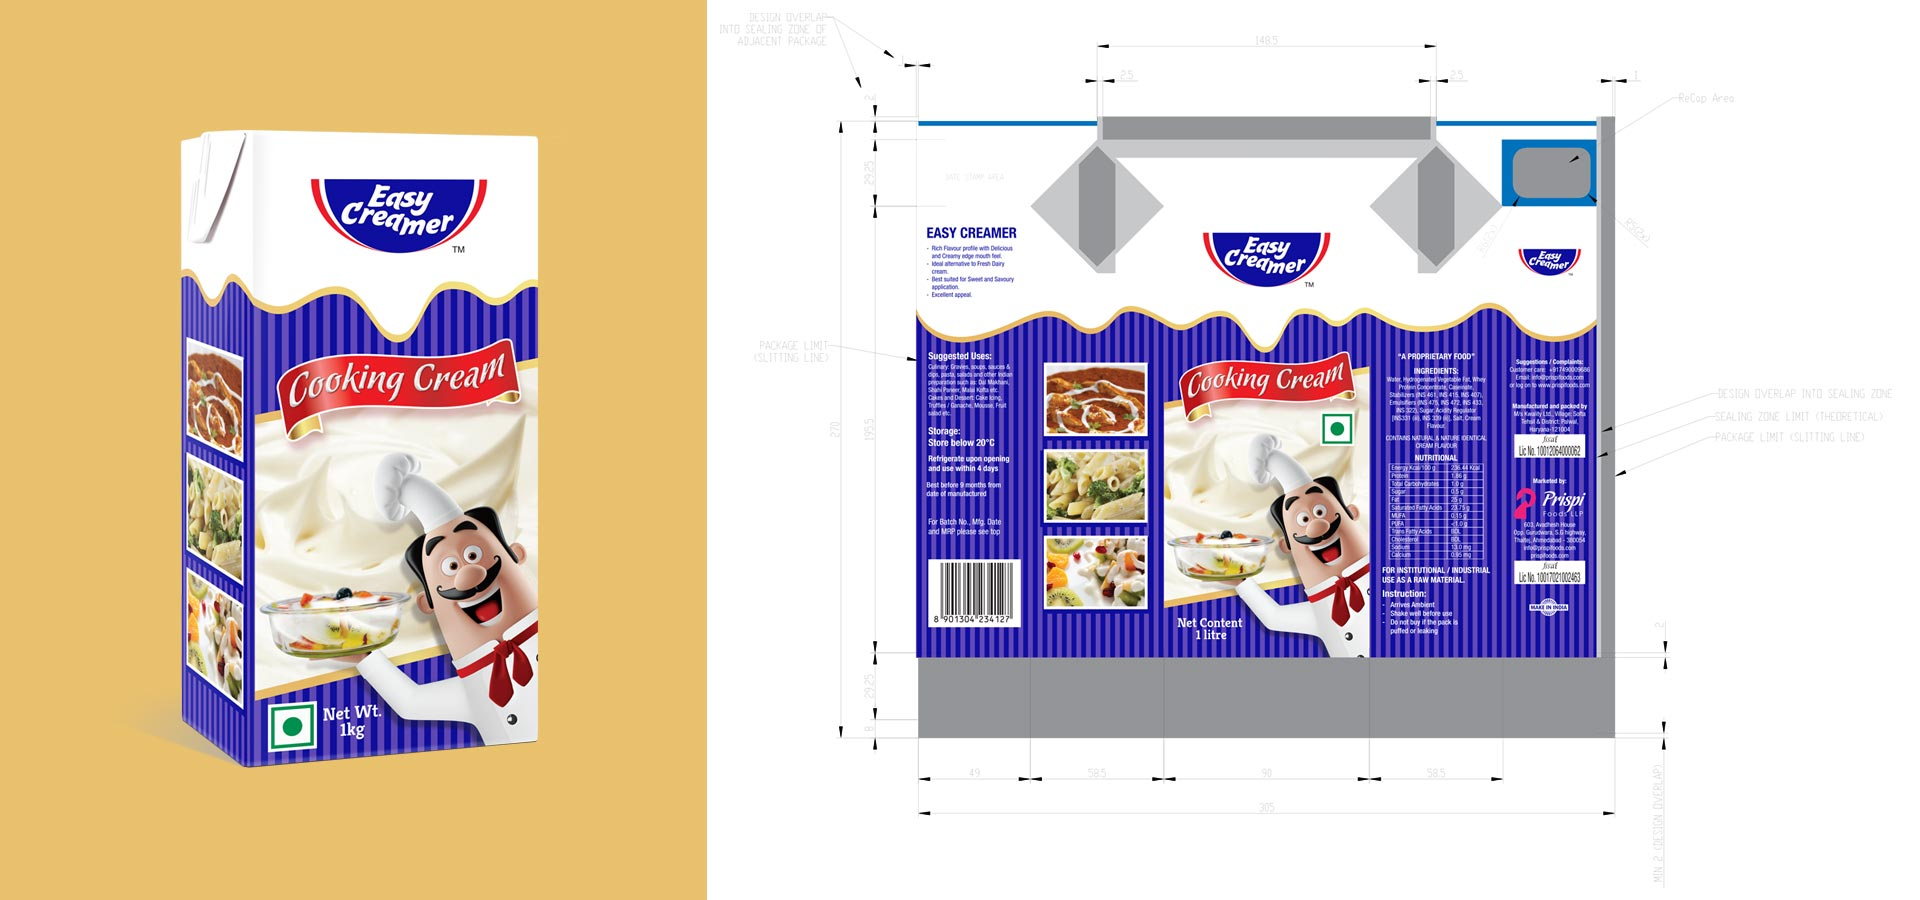 Packaging Structural Design